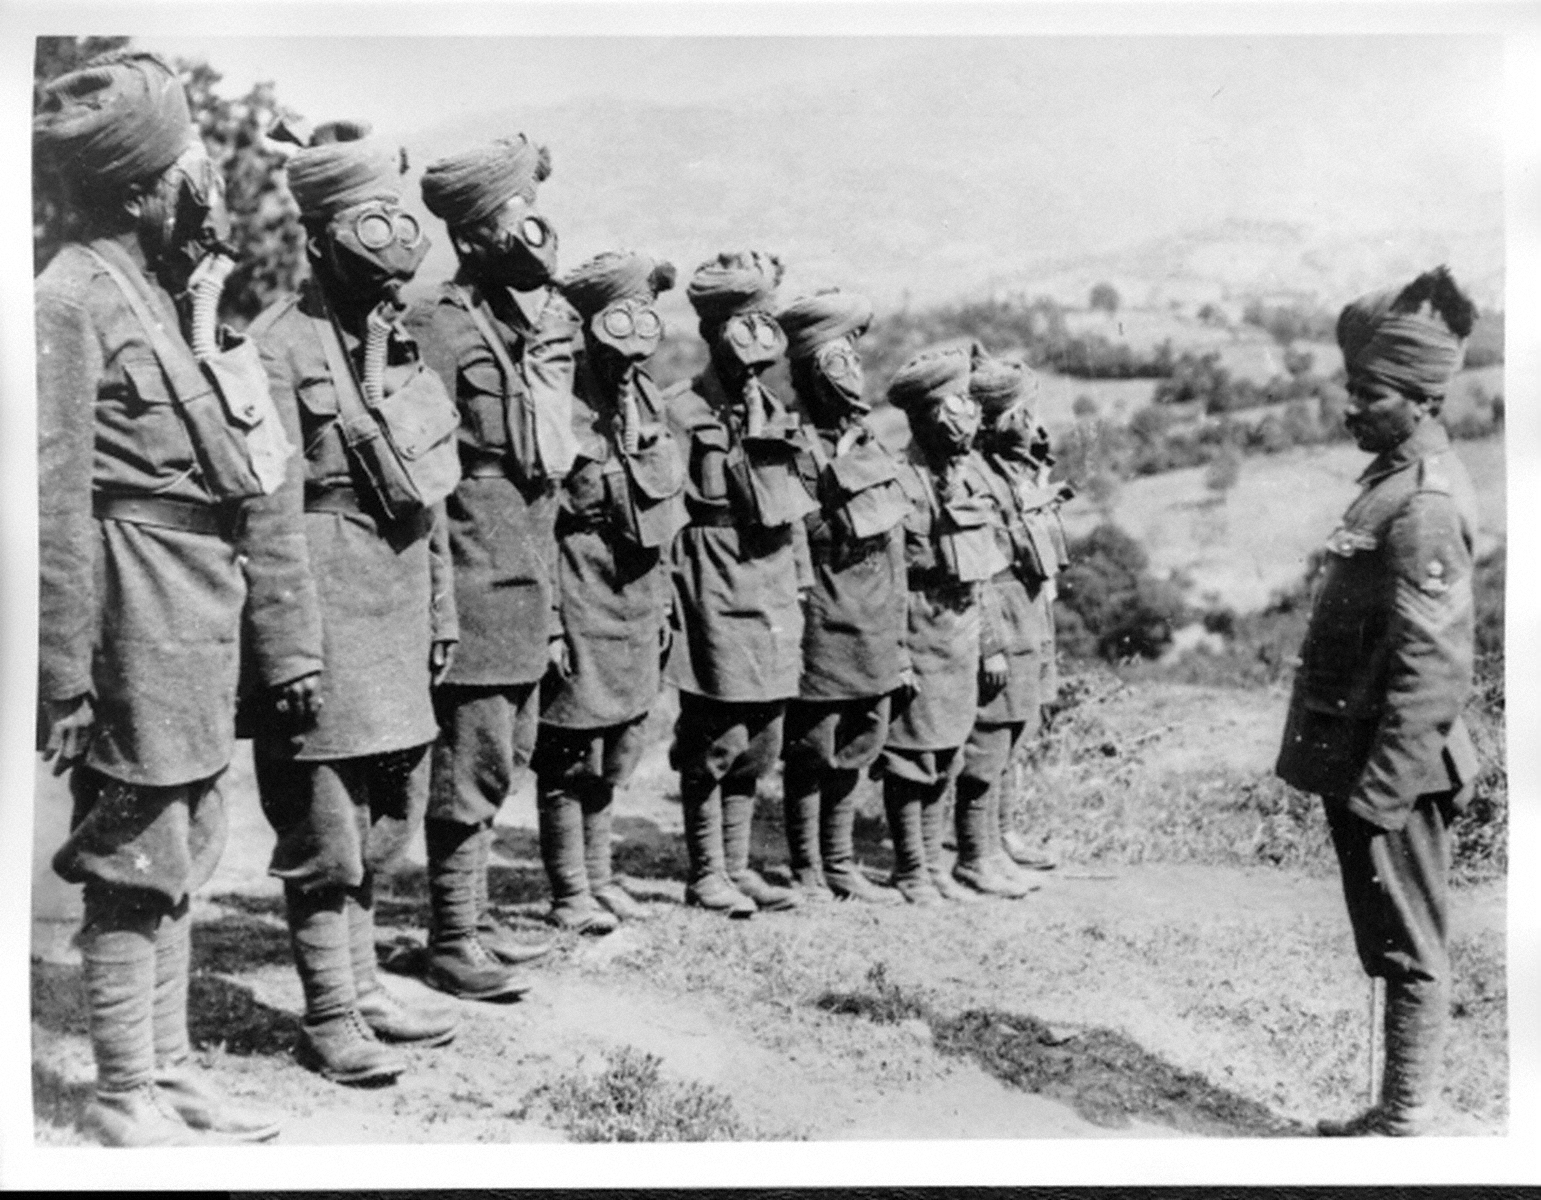 """Indian Troops at Gas Mask Drill.,"" by Unknown. The Imperial War Museum via First World War Poetry Digital Archive, accessed April 13, 2017, http://ww1lit.nsms.ox.ac.uk/ww1lit/collections/item/3616."